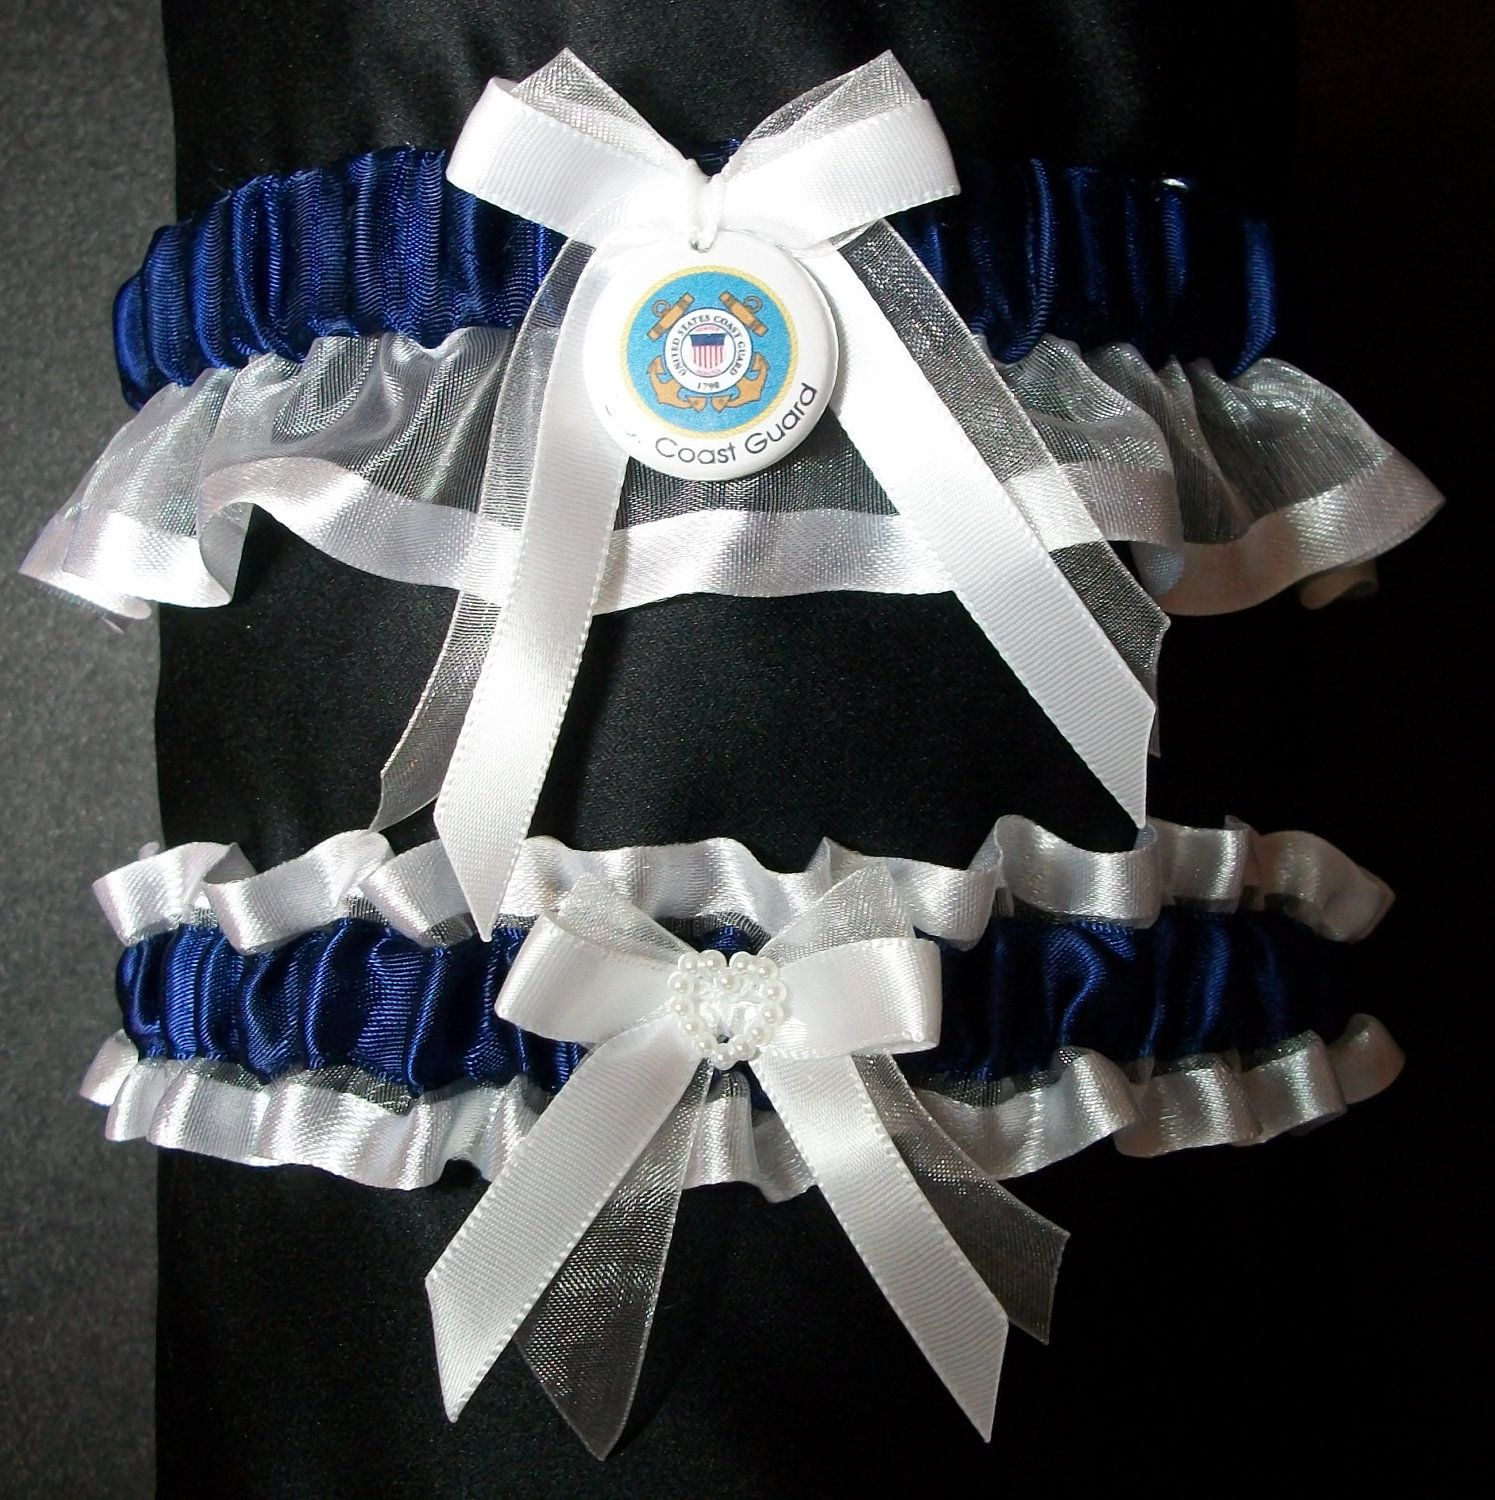 Navy blue dress for spring wedding  United States Coast Guard Garter set in navy blue fabric with white